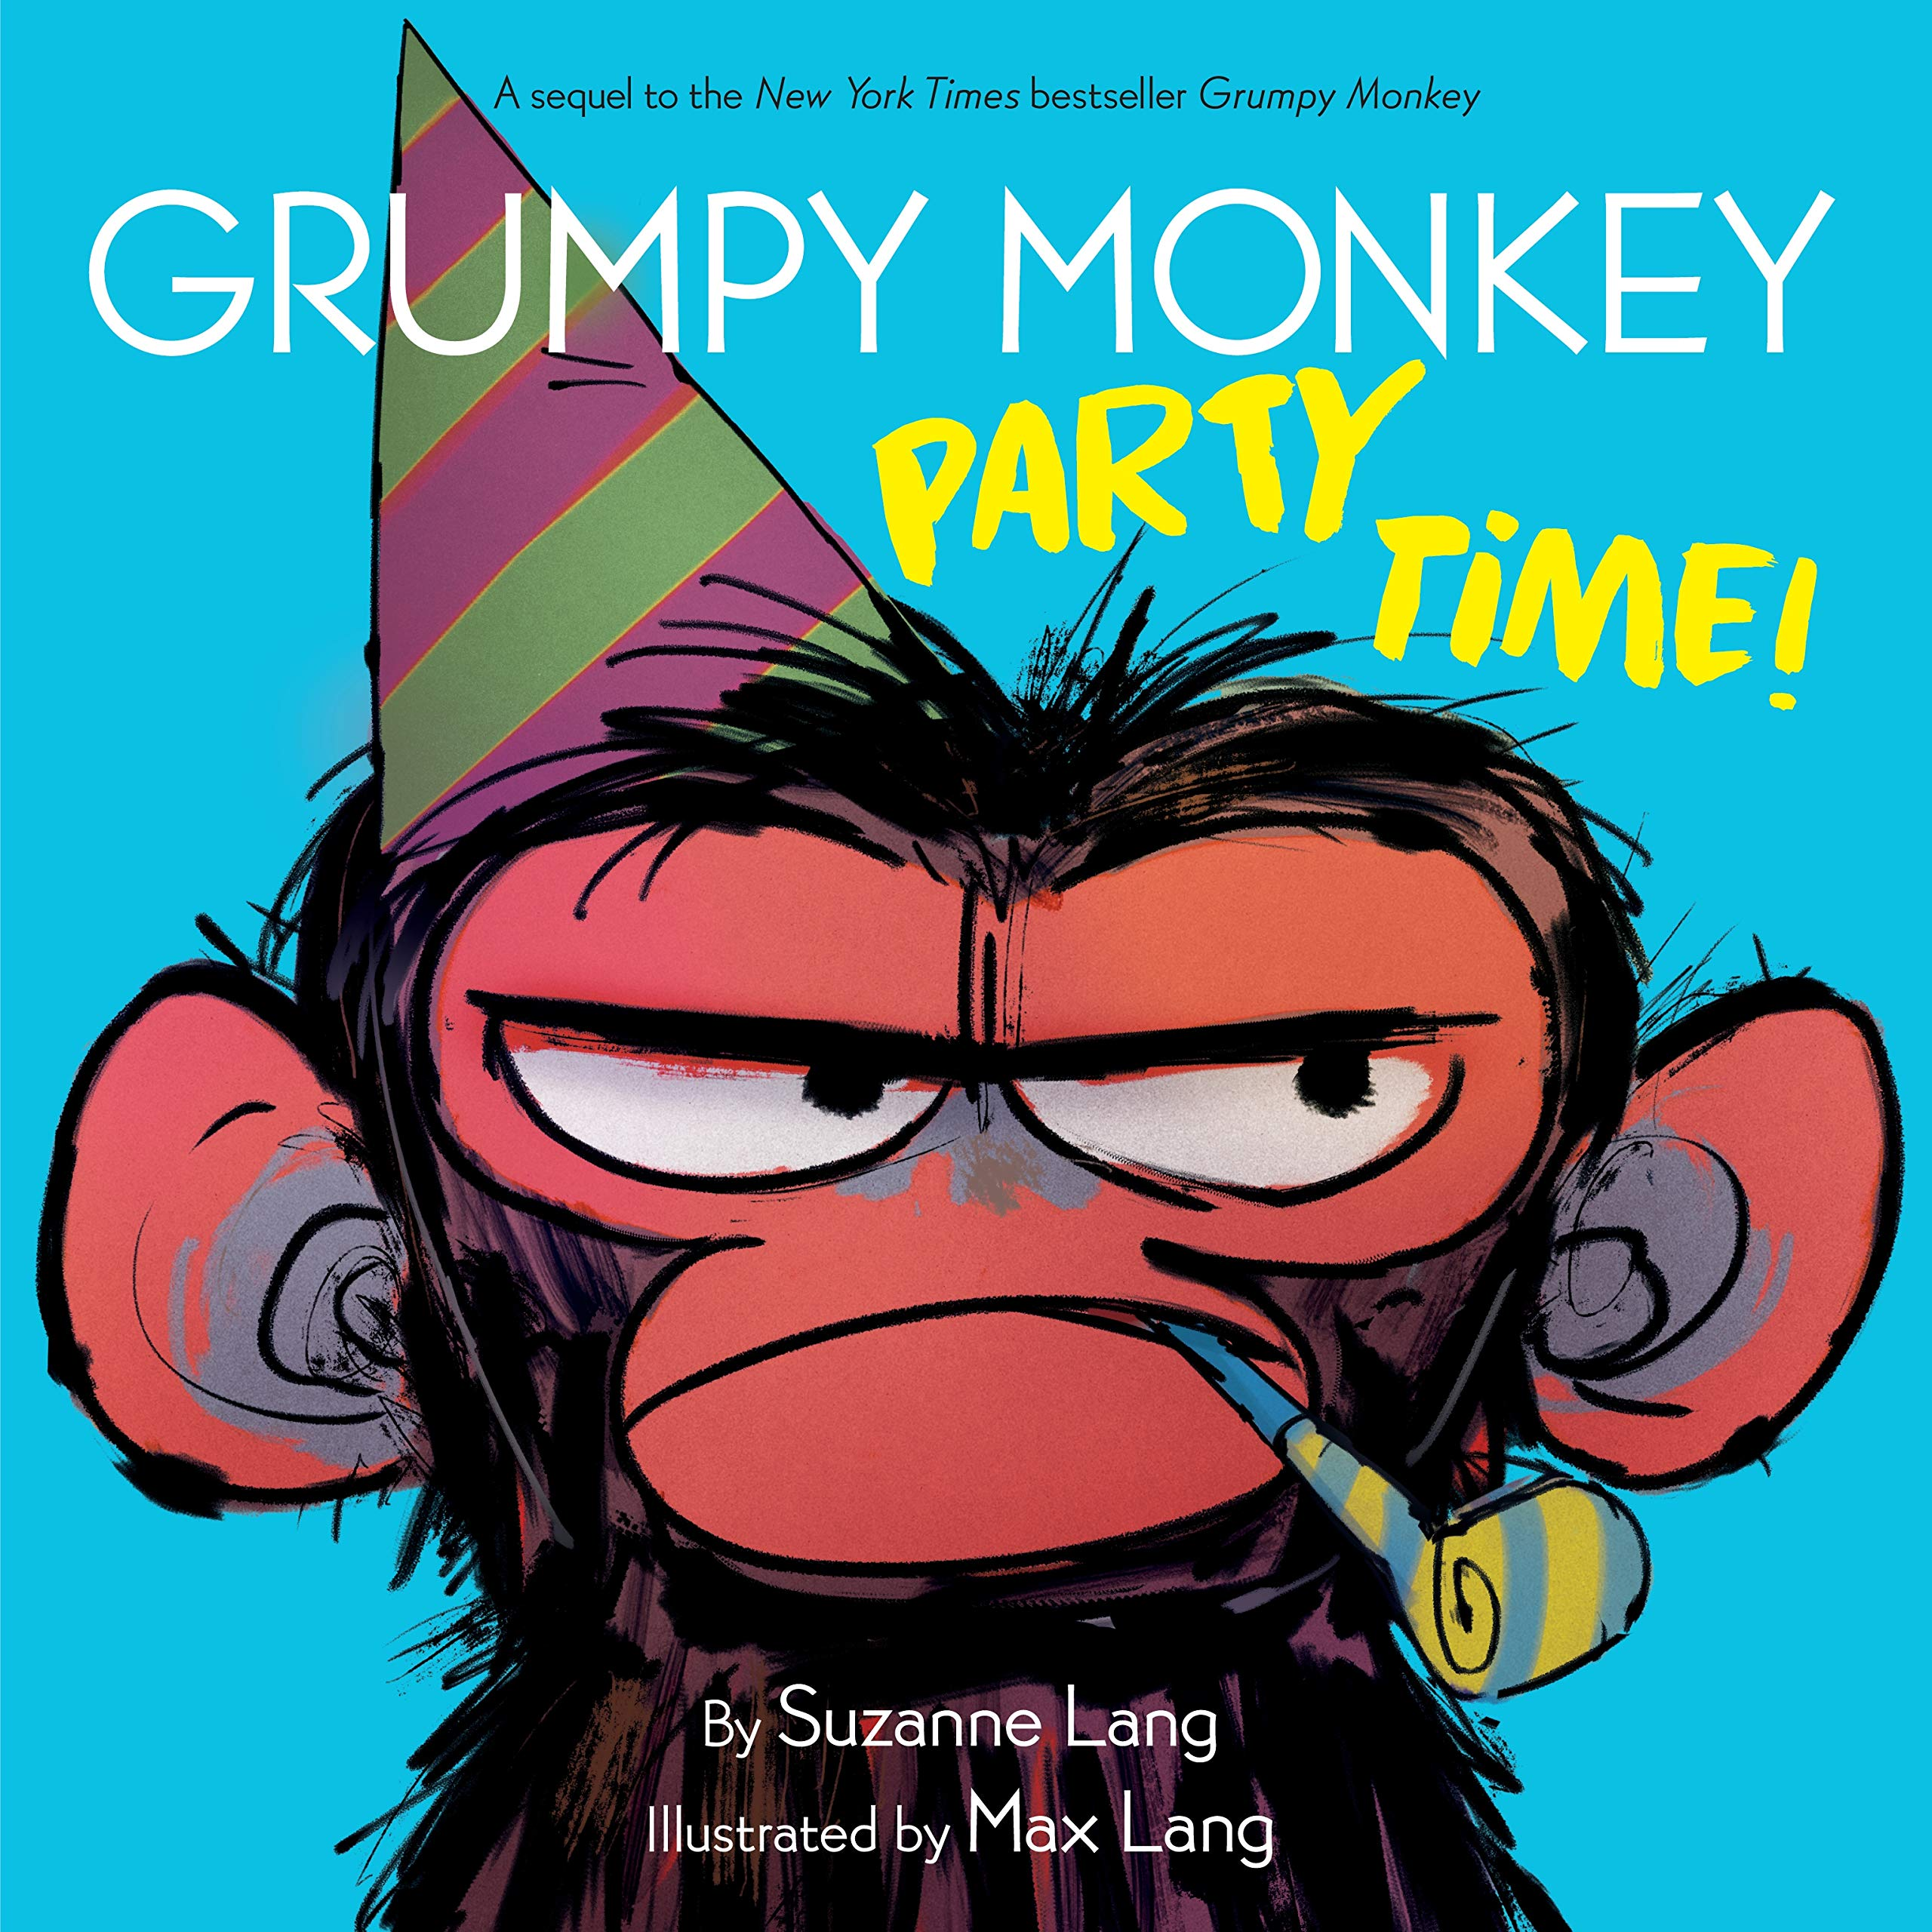 Sunday Story Time with Grumpy Monkey Party Time!